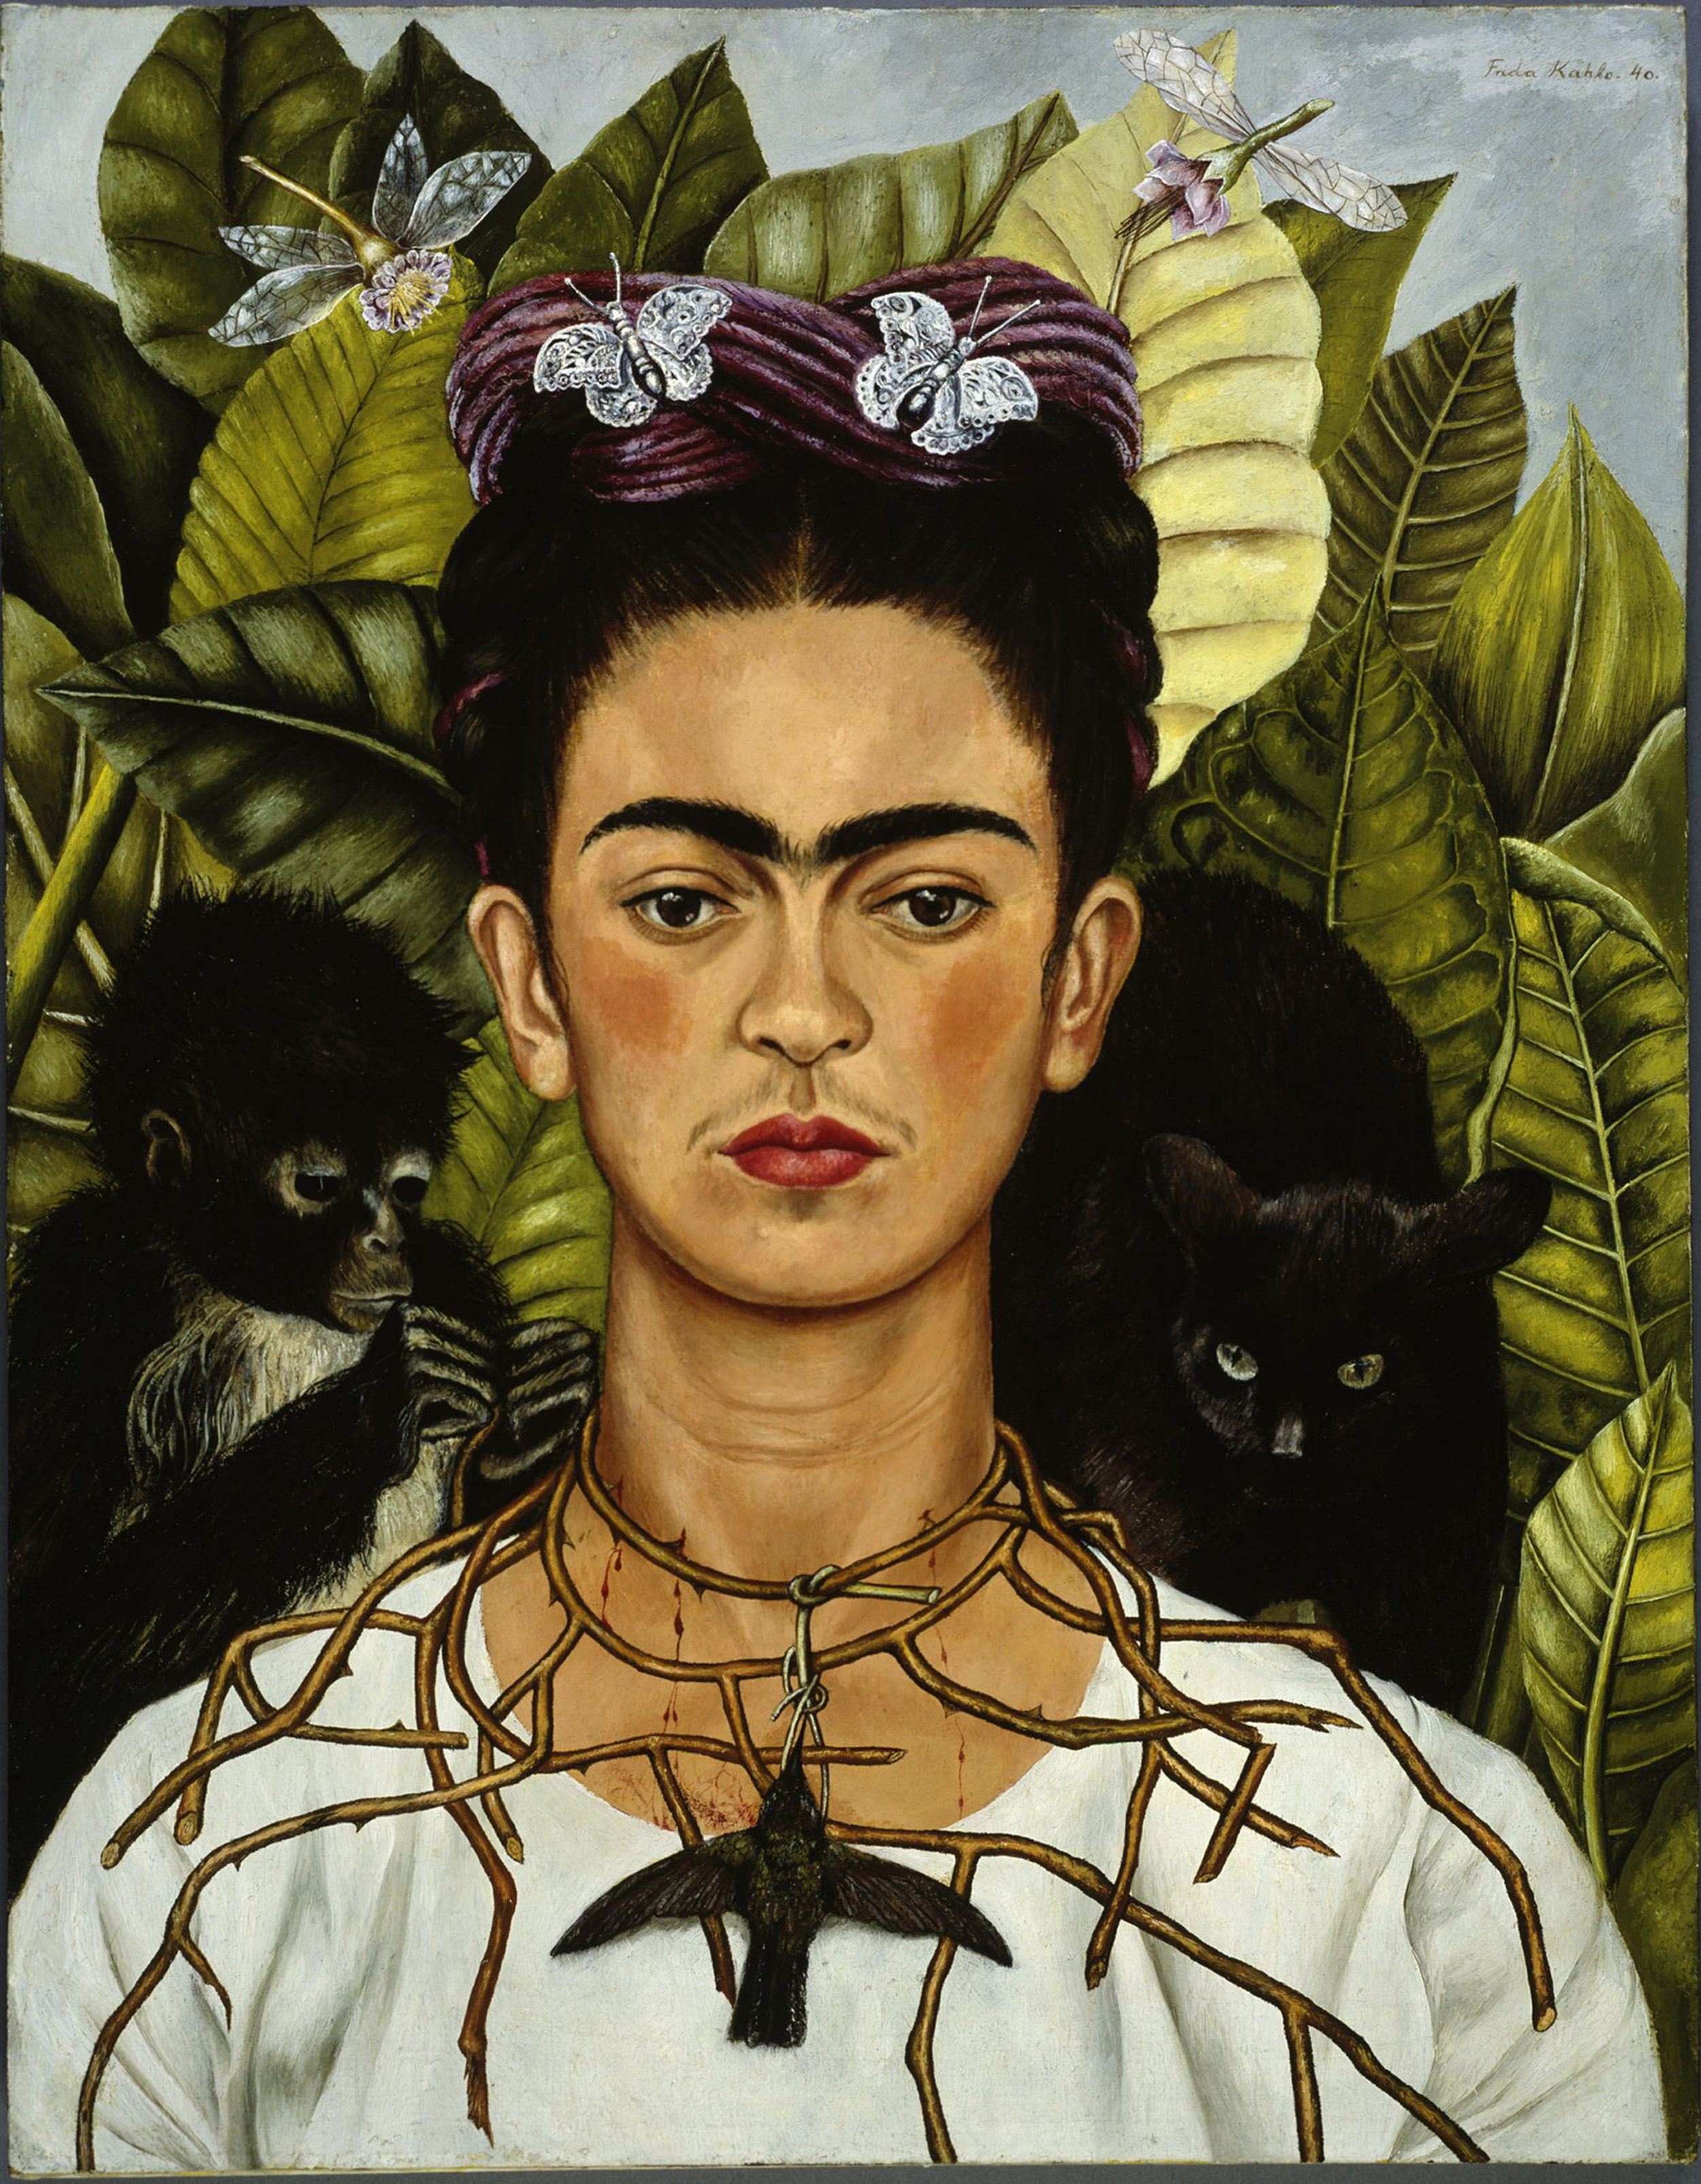 Frida Kahlo, Self Portrait with Necklace of Thorn Necklace and Hummingbird, 1940, Bridgeman.jpg